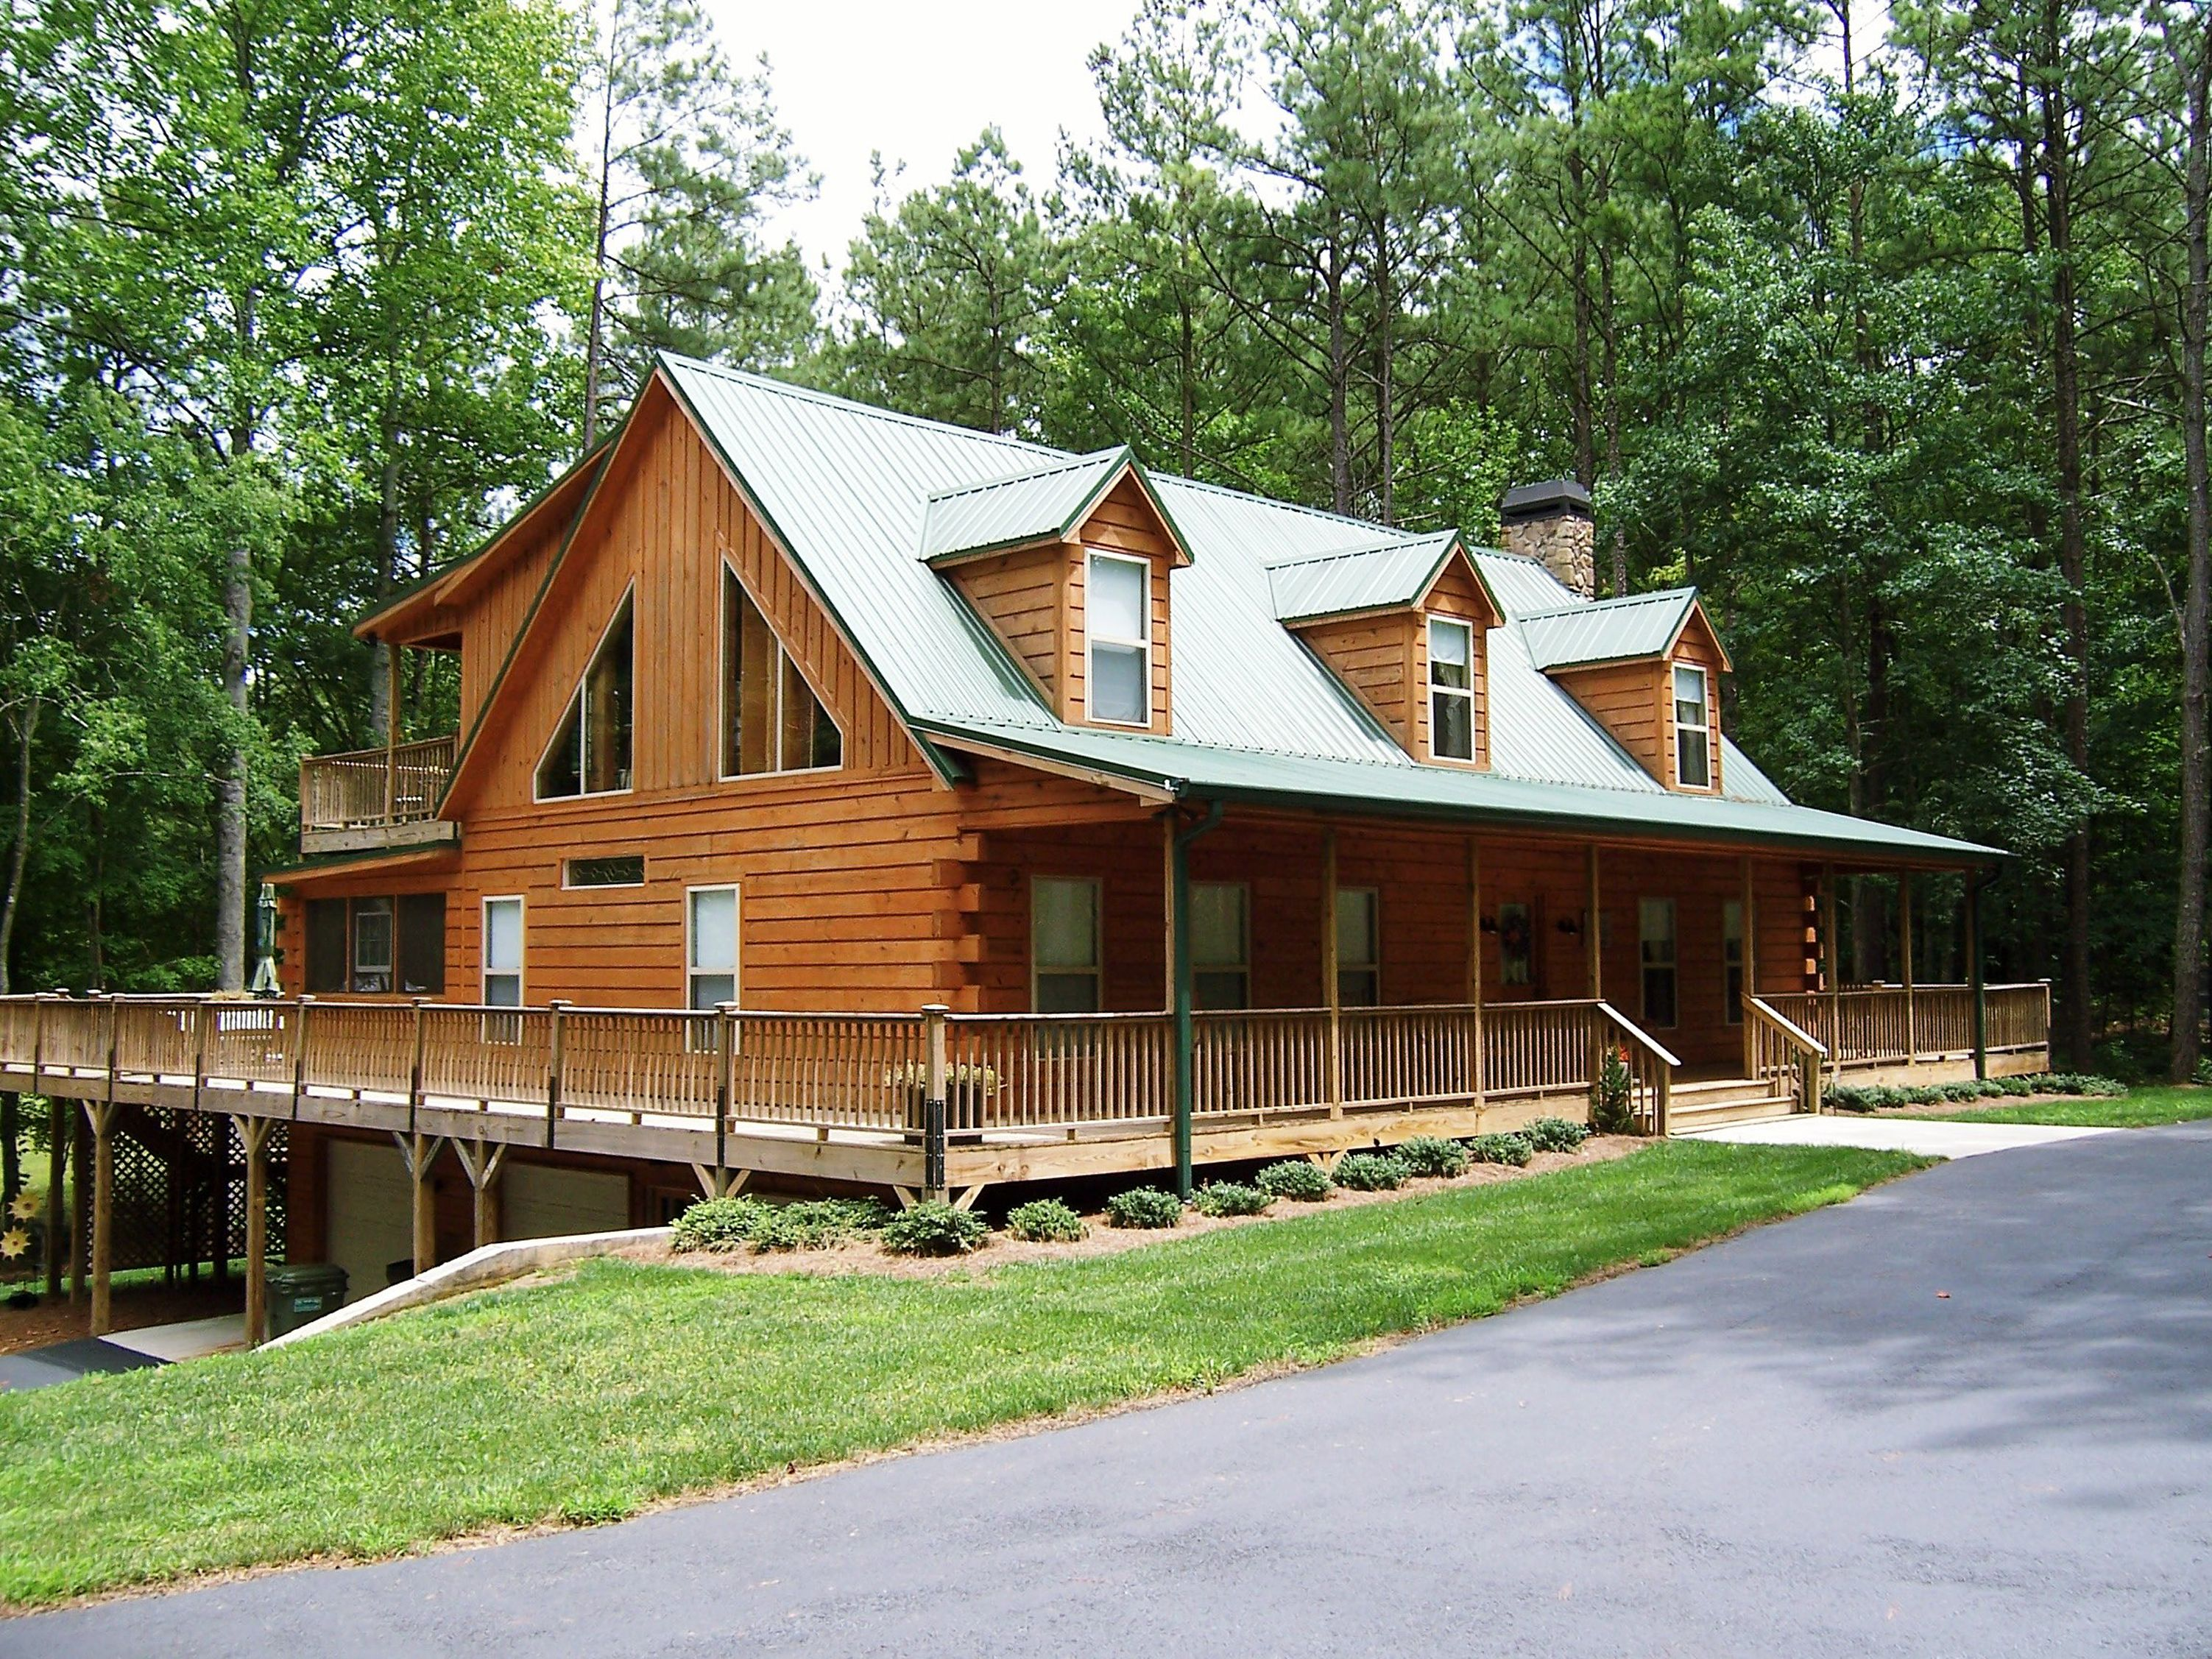 Modular Cabin With Split Log Siding By Nationwide Homes Rustic House Timber House Log Homes